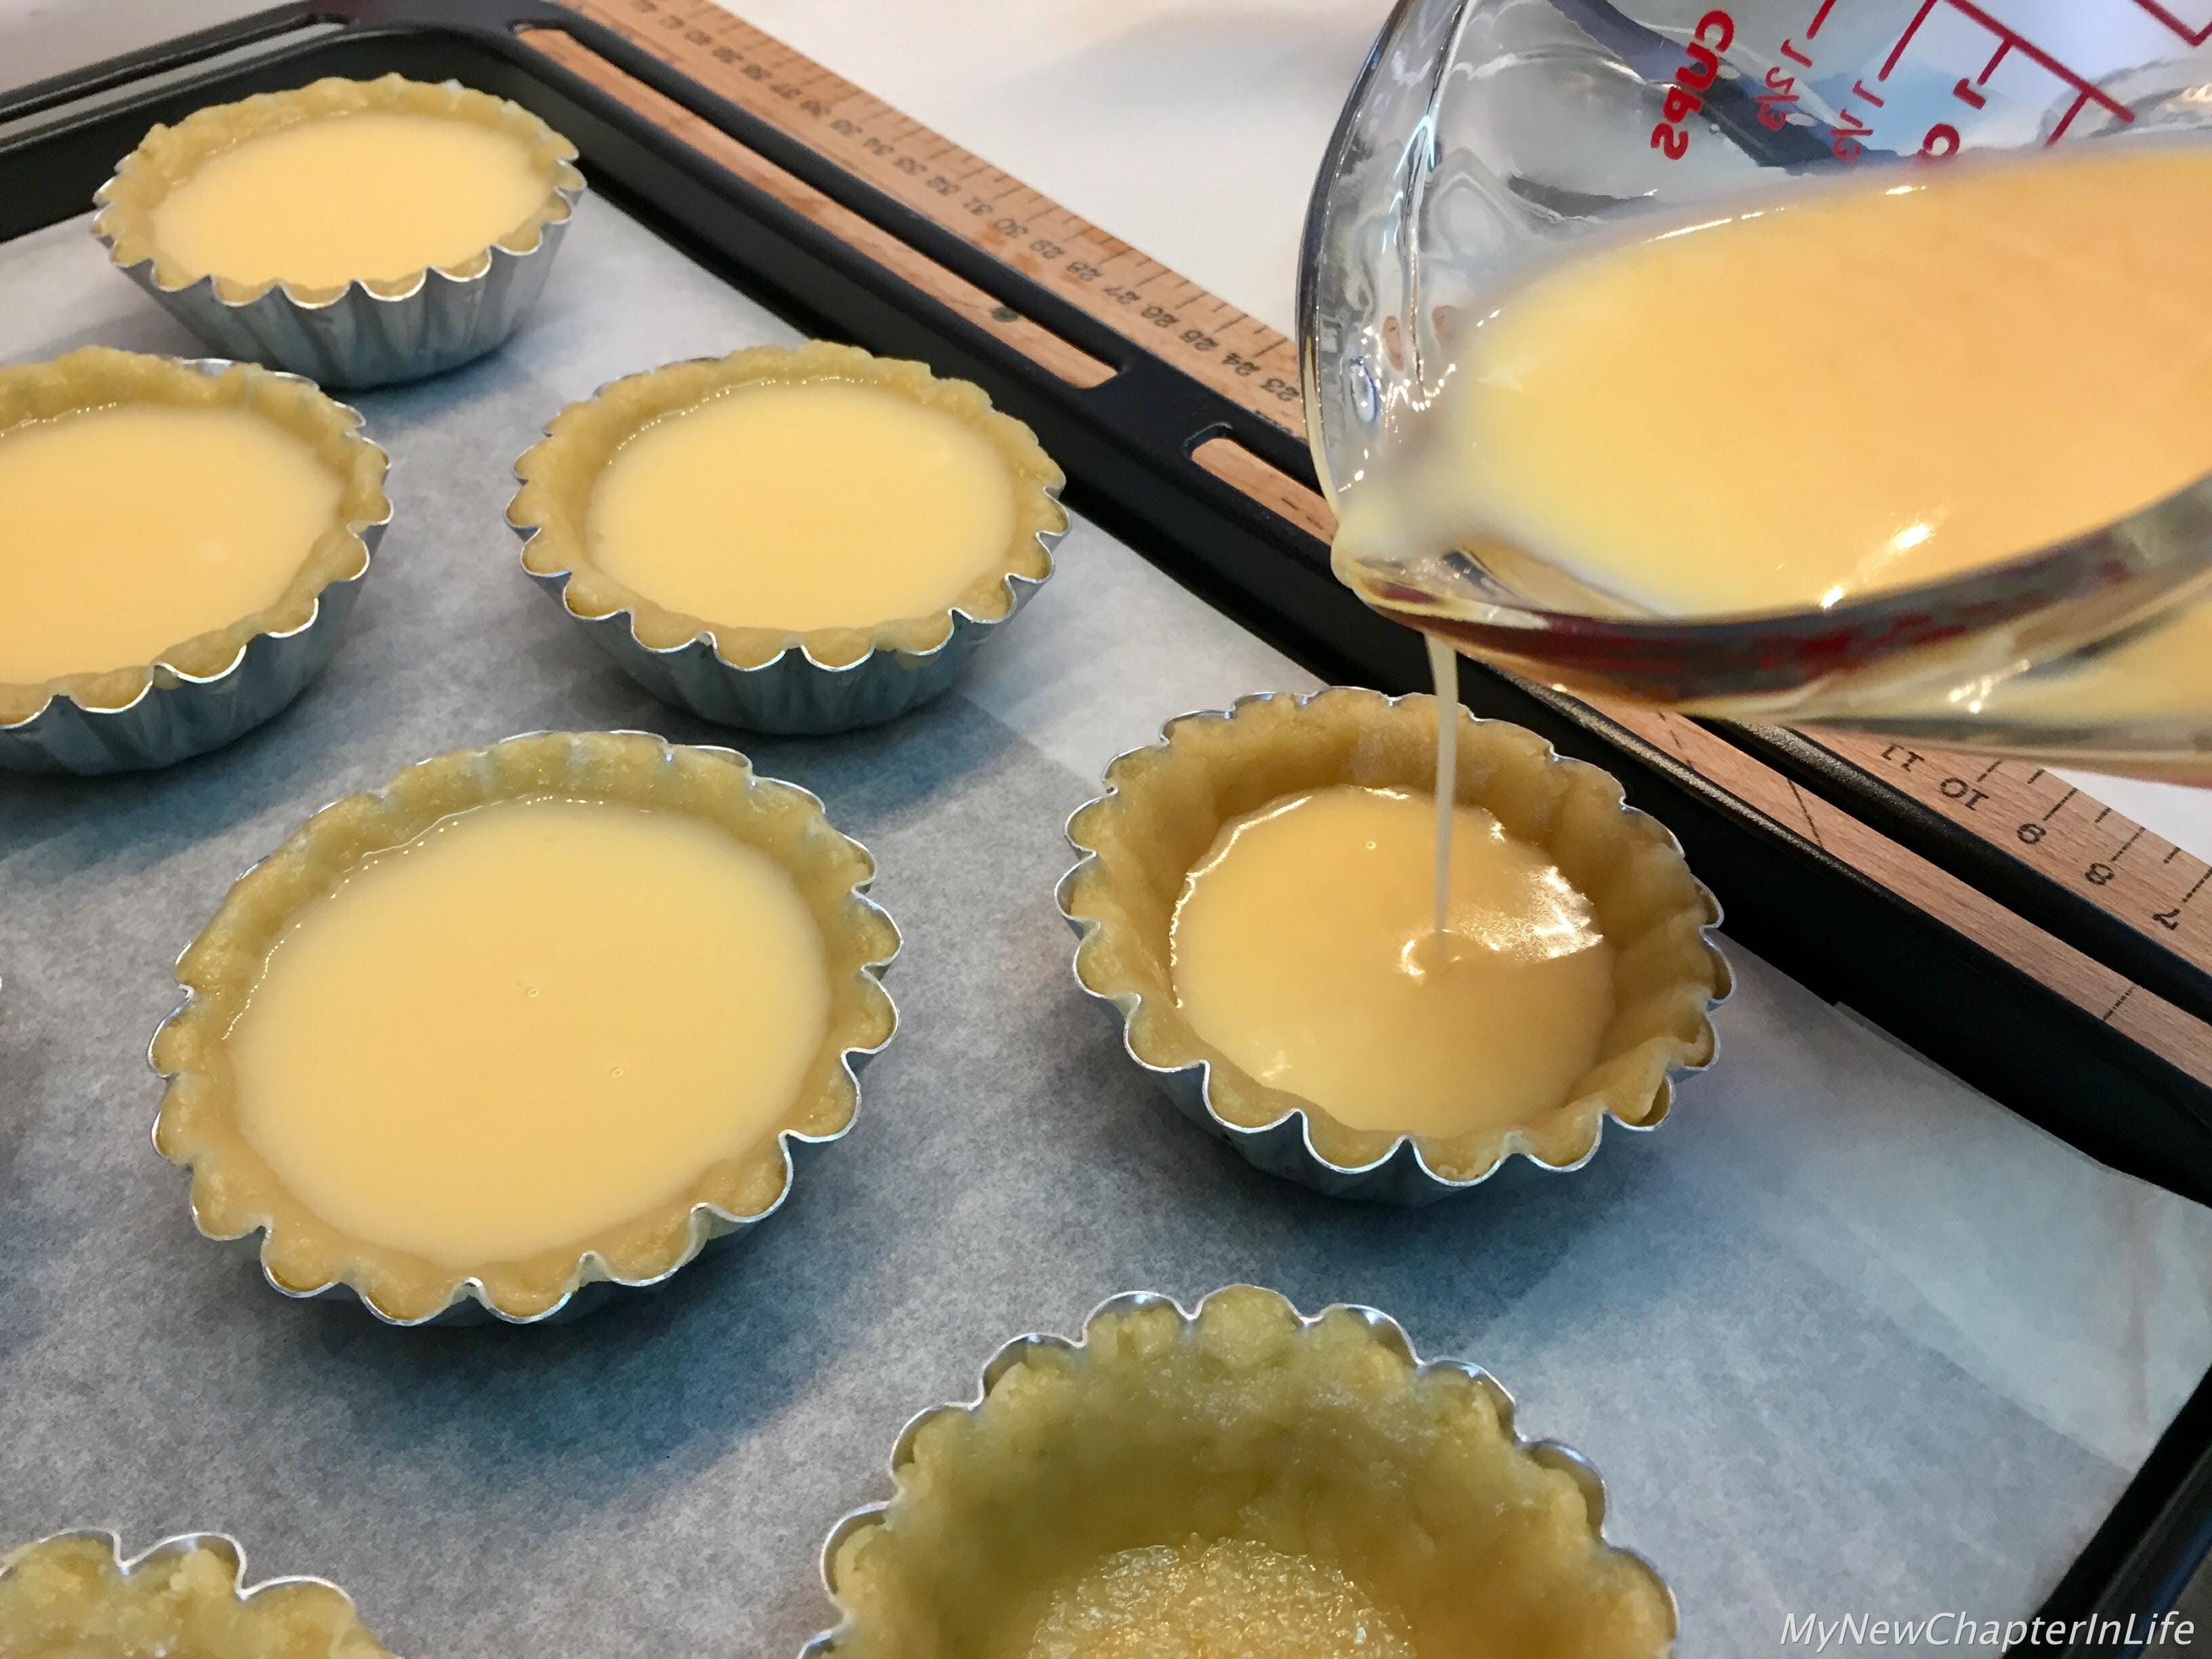 Pour the egg-tart filling into the mould